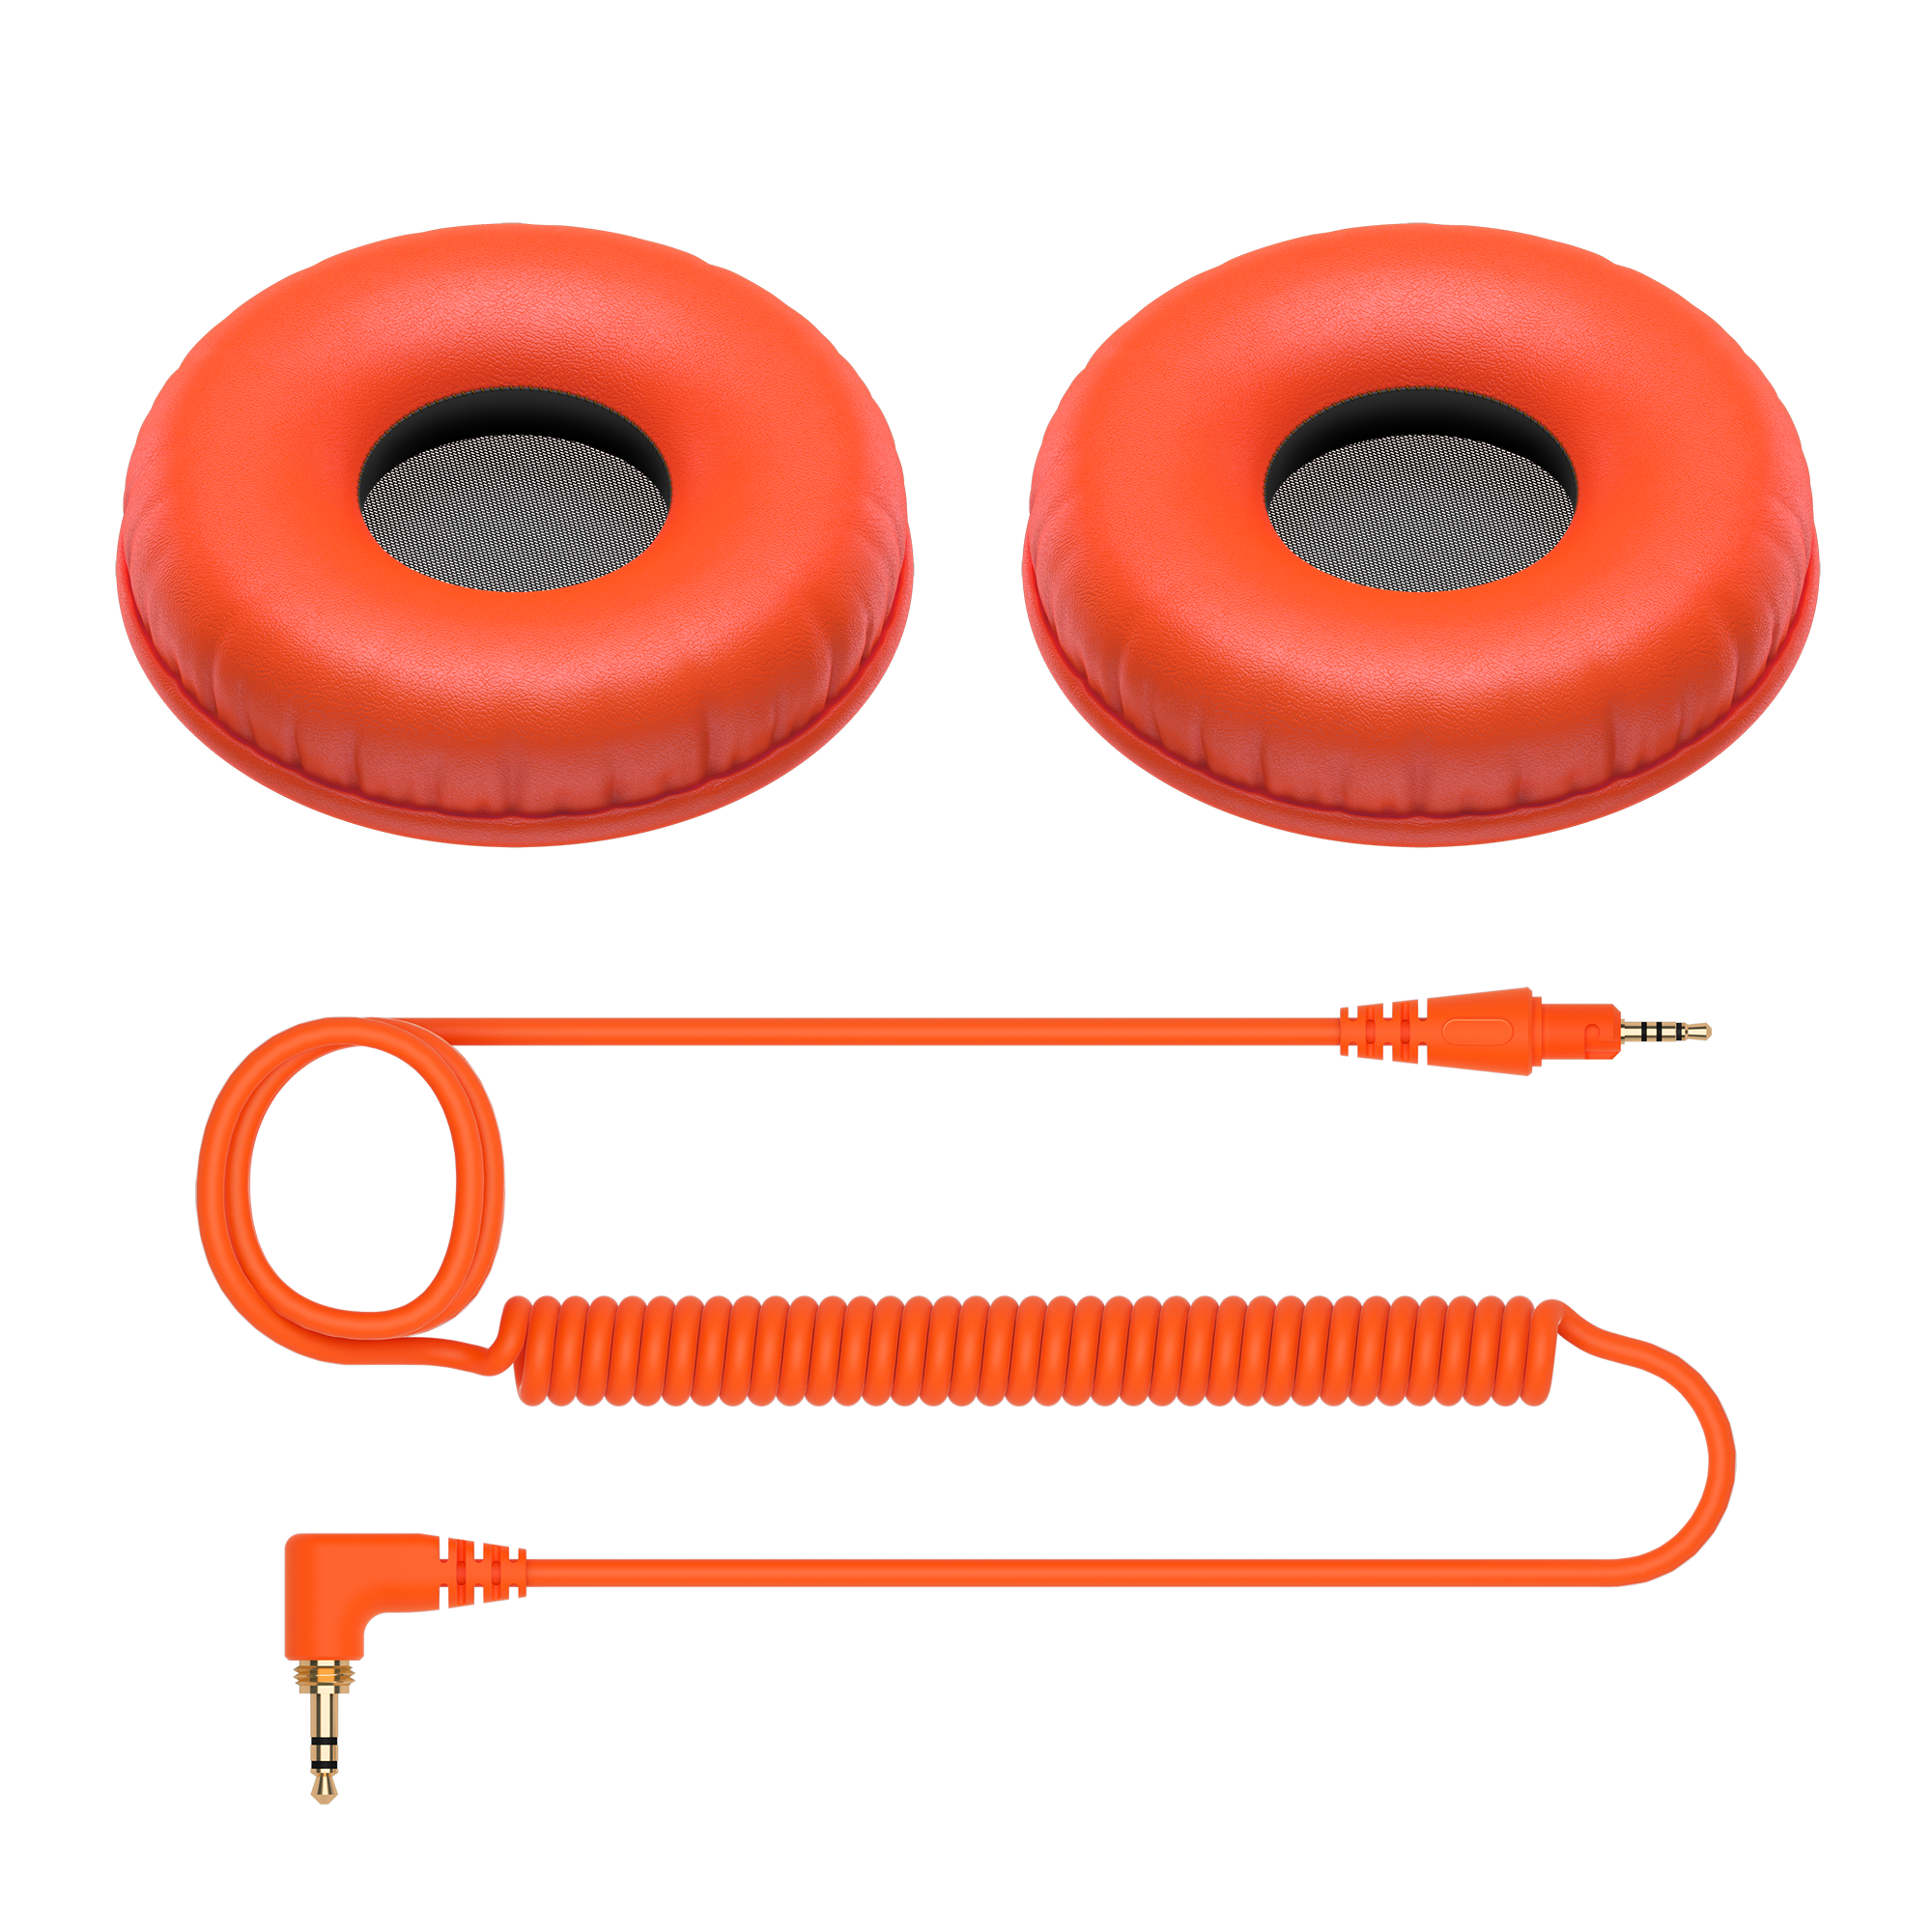 Color variation coiled cable and ear pads for HDJ-CUE1